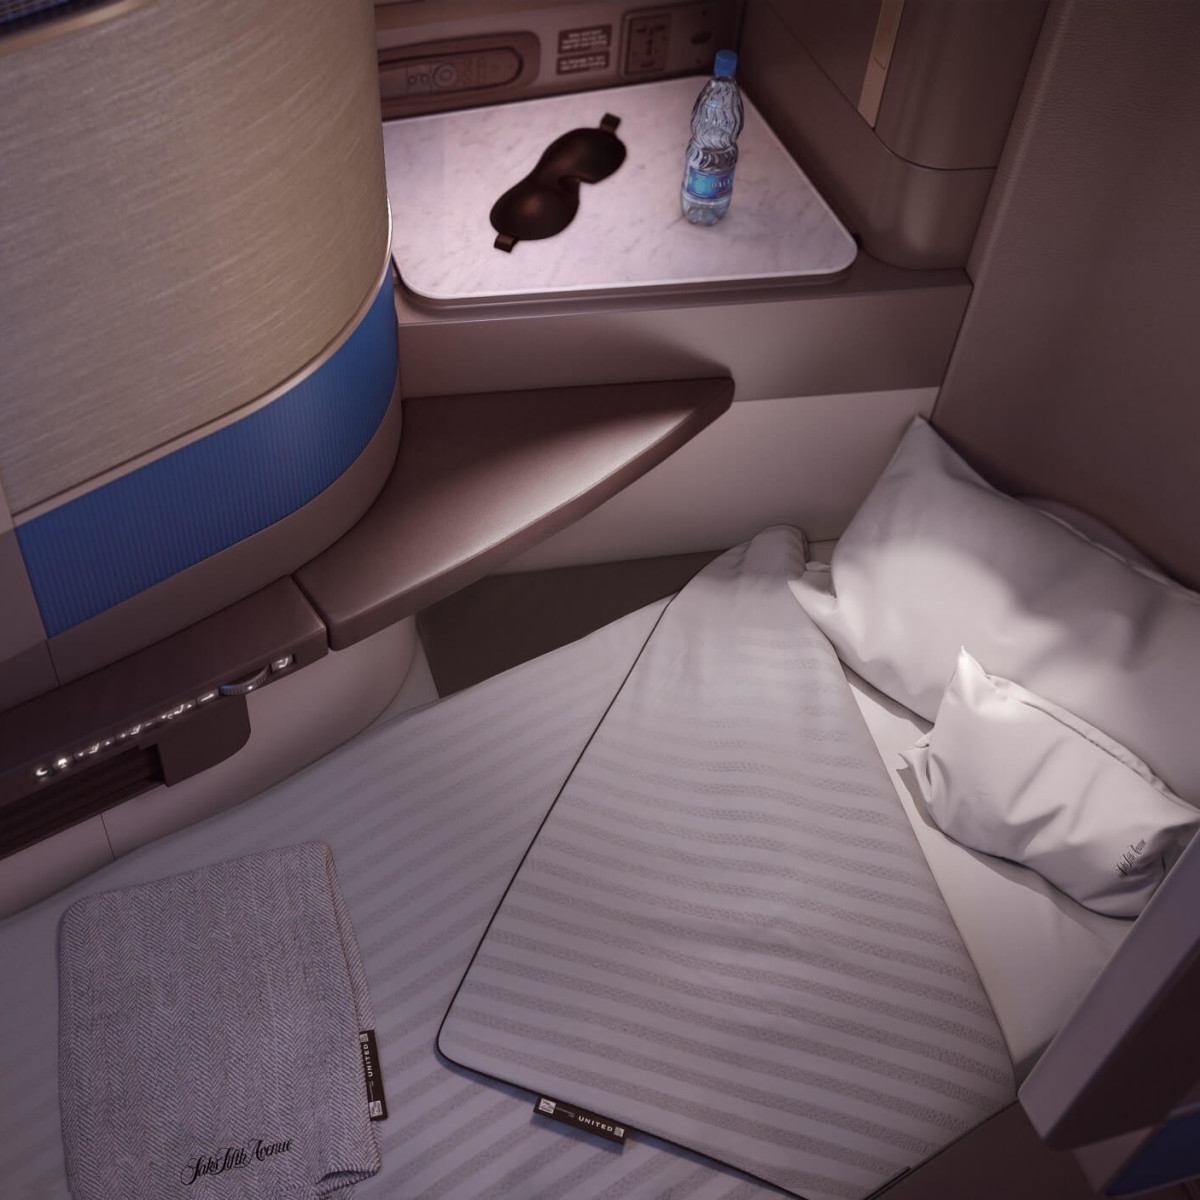 United Polaris bed service